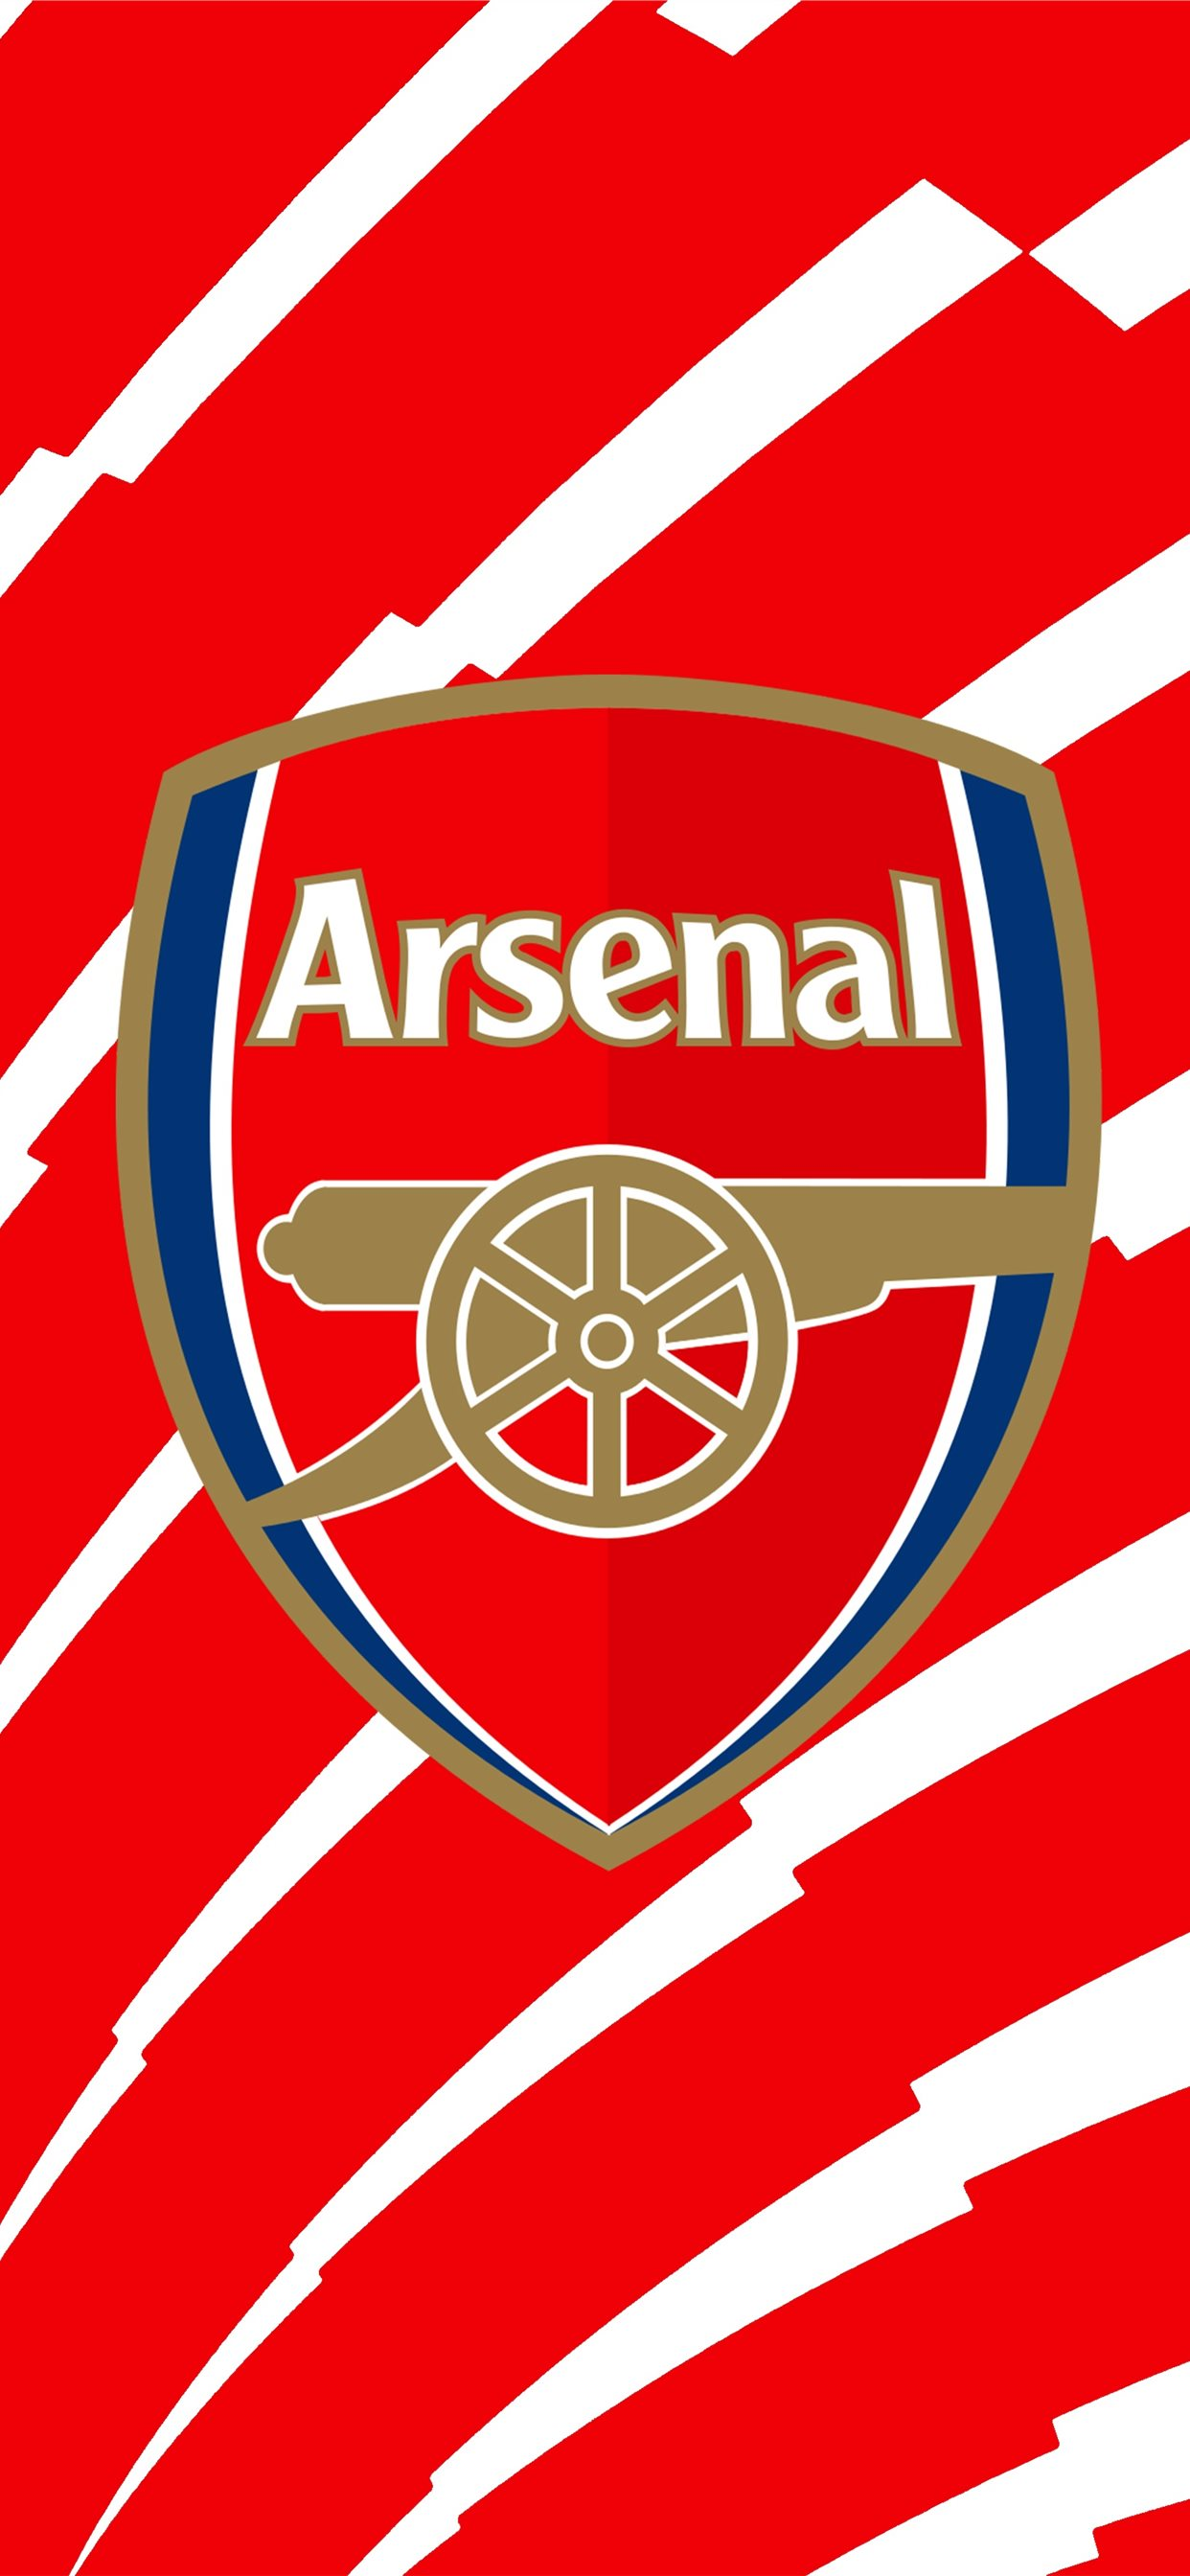 Arsenal Hd Backgrounds Iphone Wallpapers Free Download